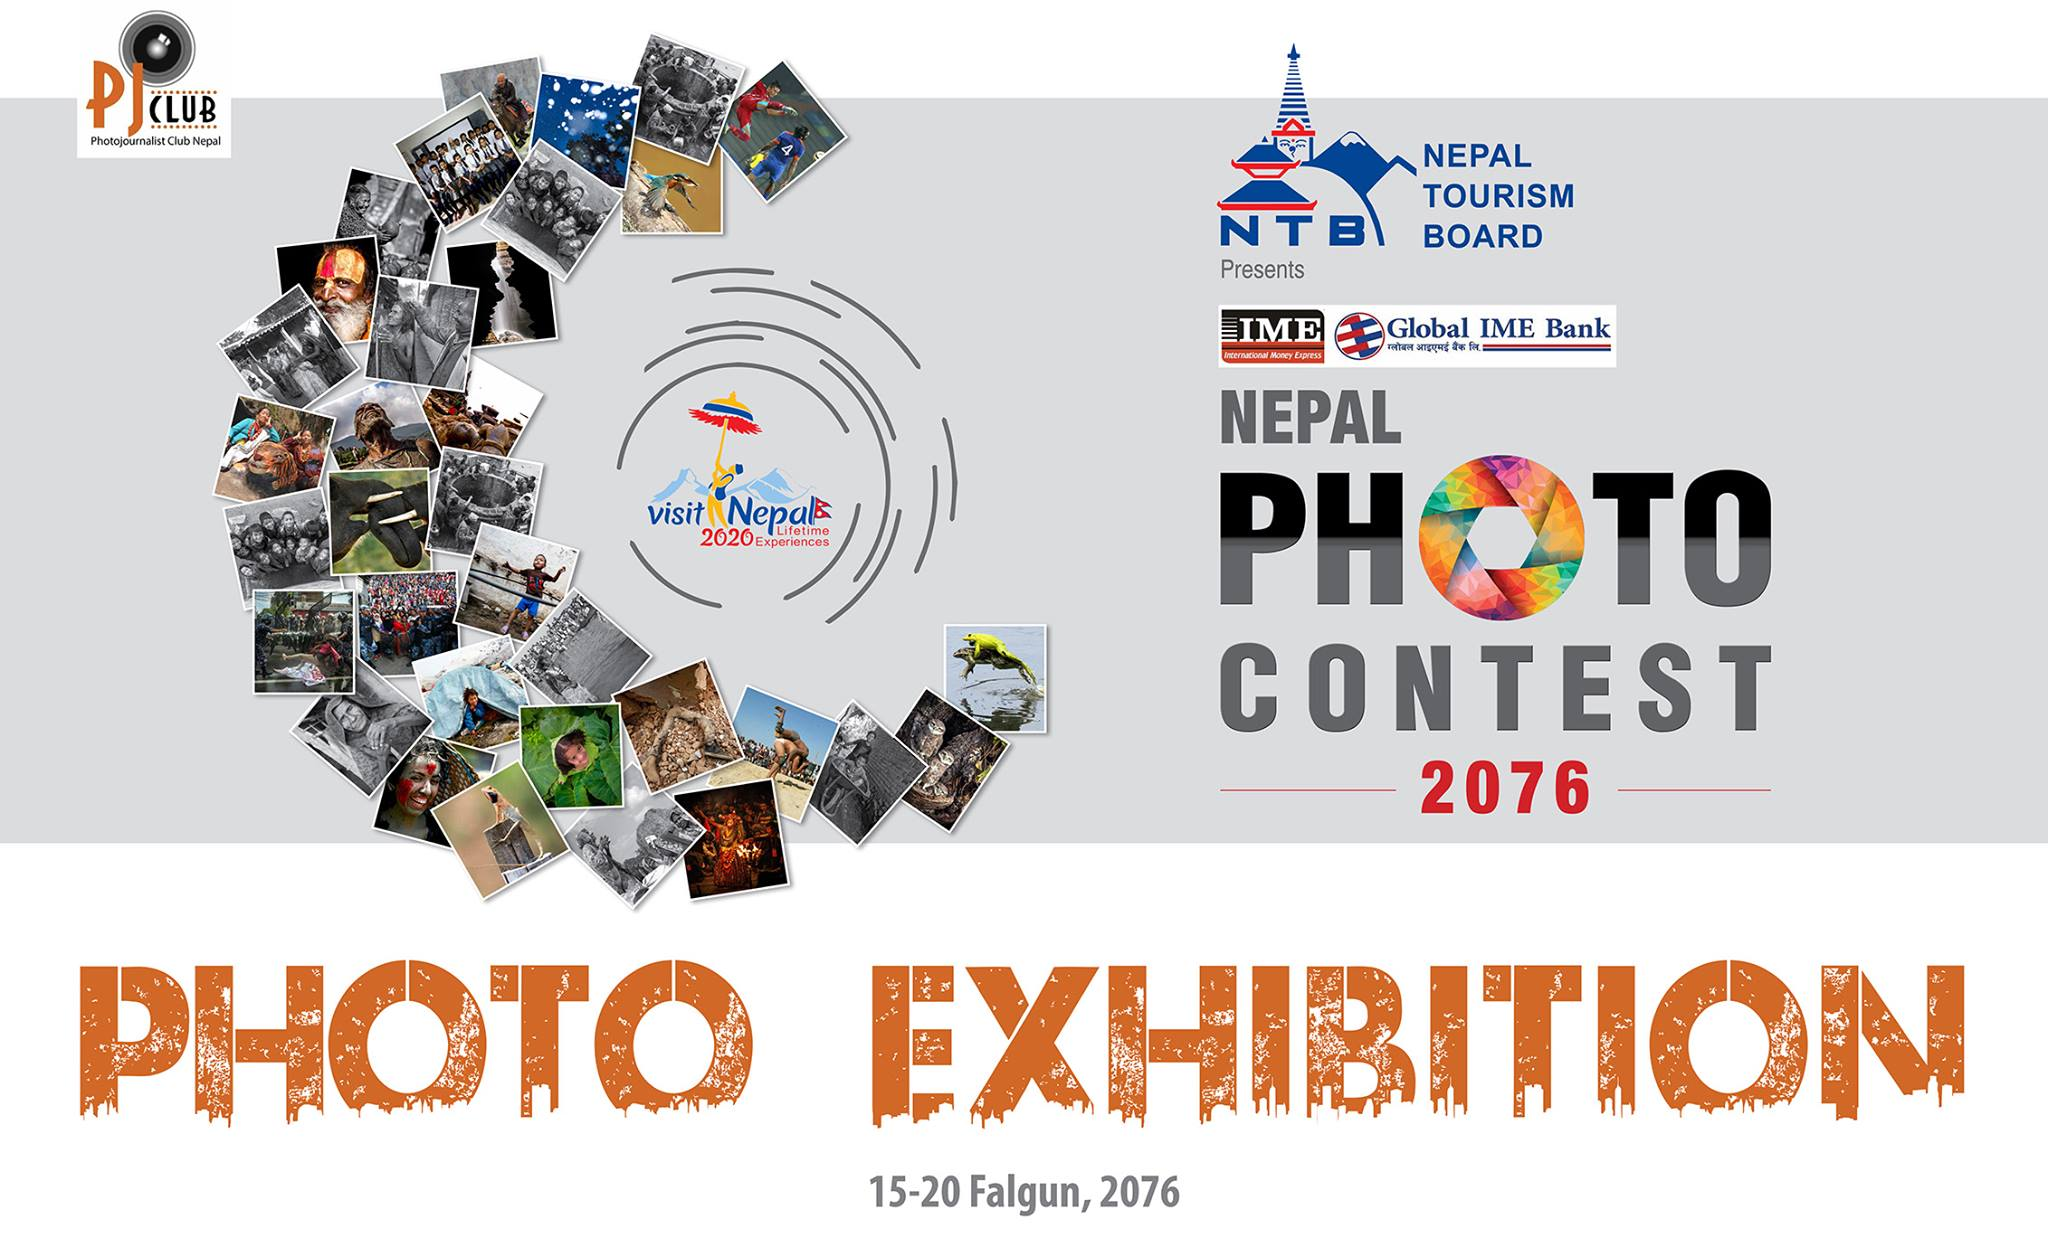 Nepal Photo Contest Exhibition 2076